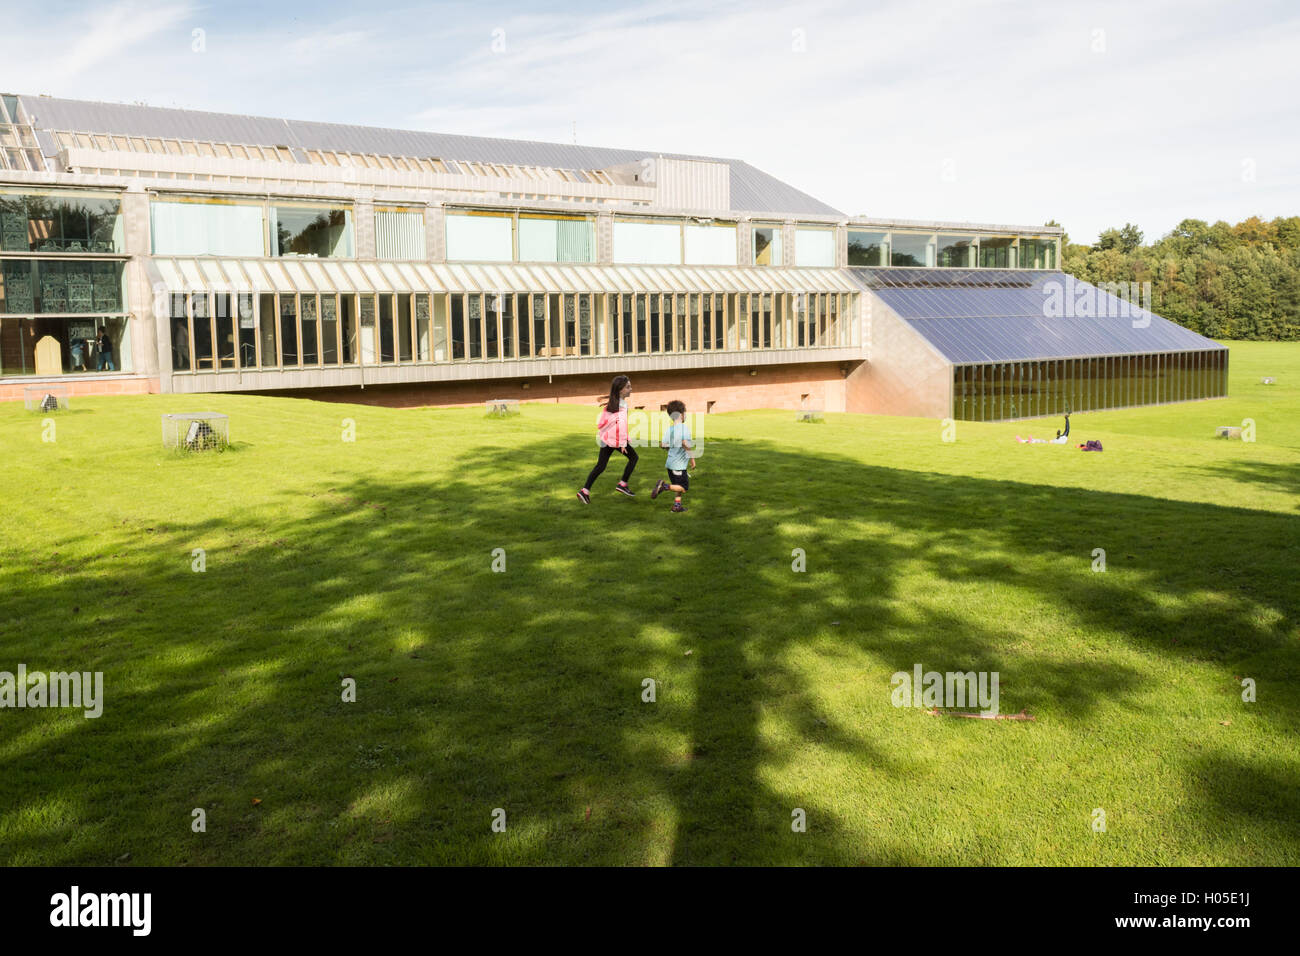 The Burrell Collection exterior in the grounds of Pollok Park, Glasgow, Scotland - Stock Image